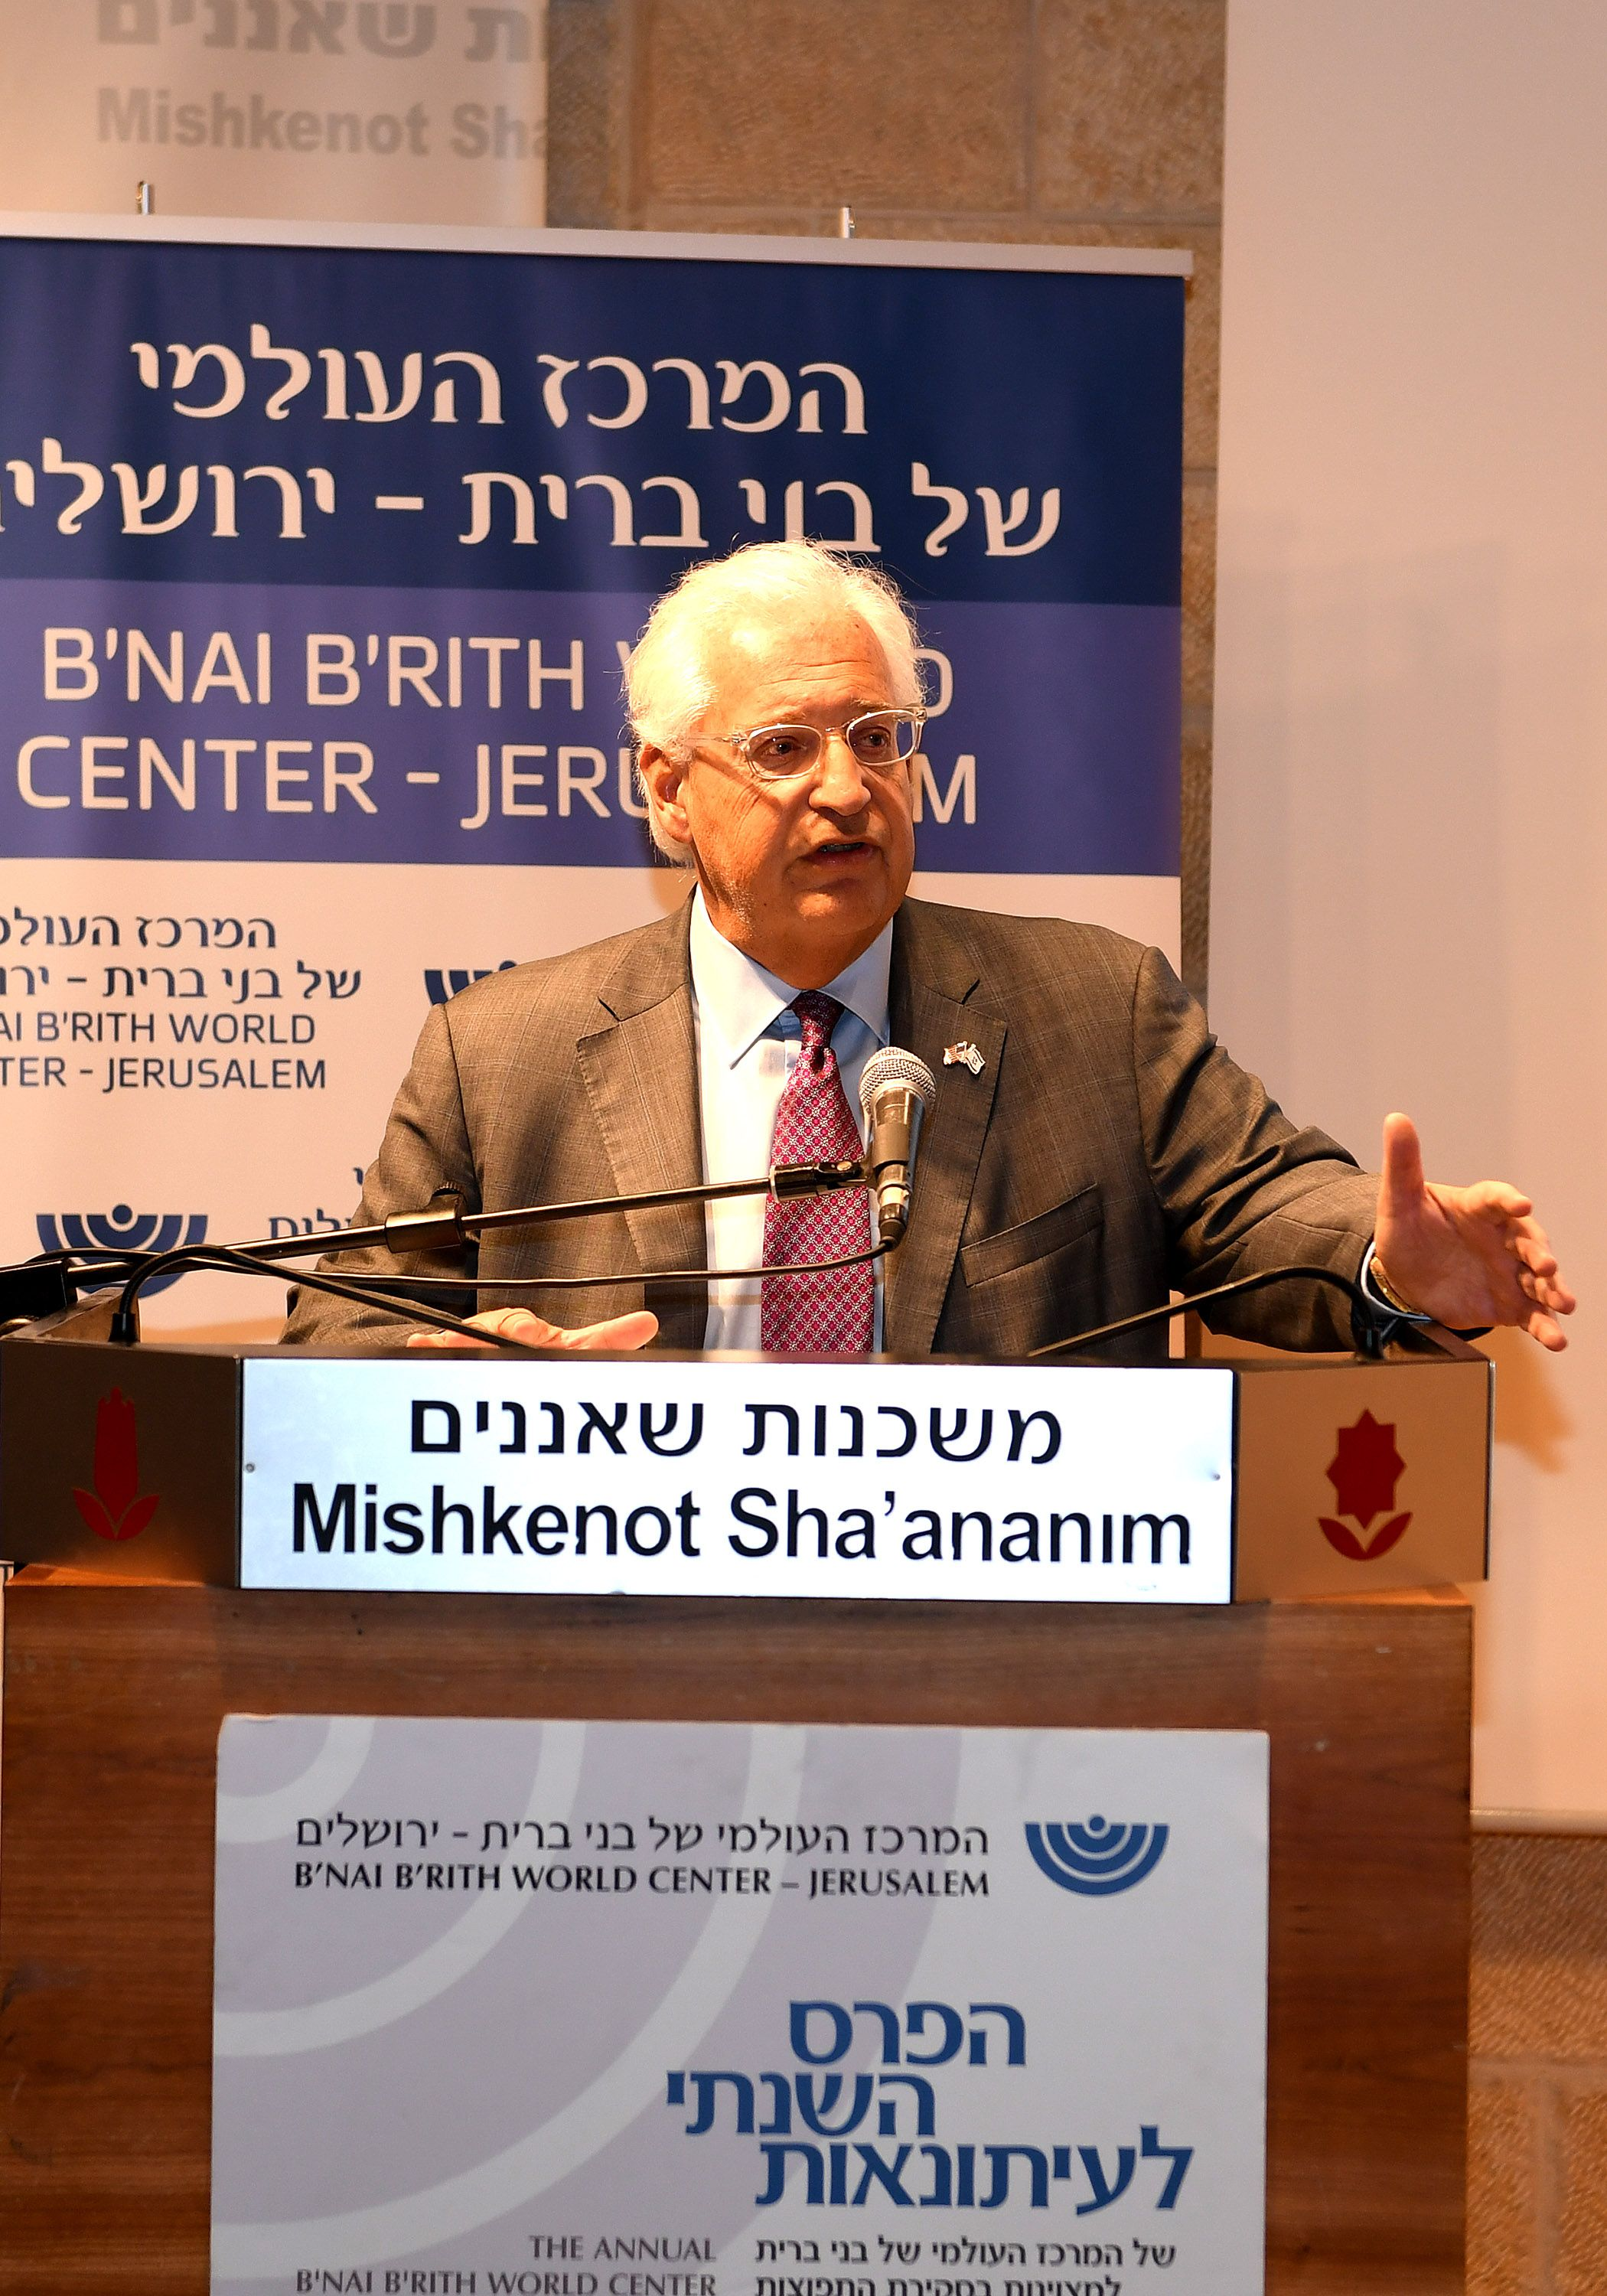 Trump's Israel envoy urges Jewish unity in first official address